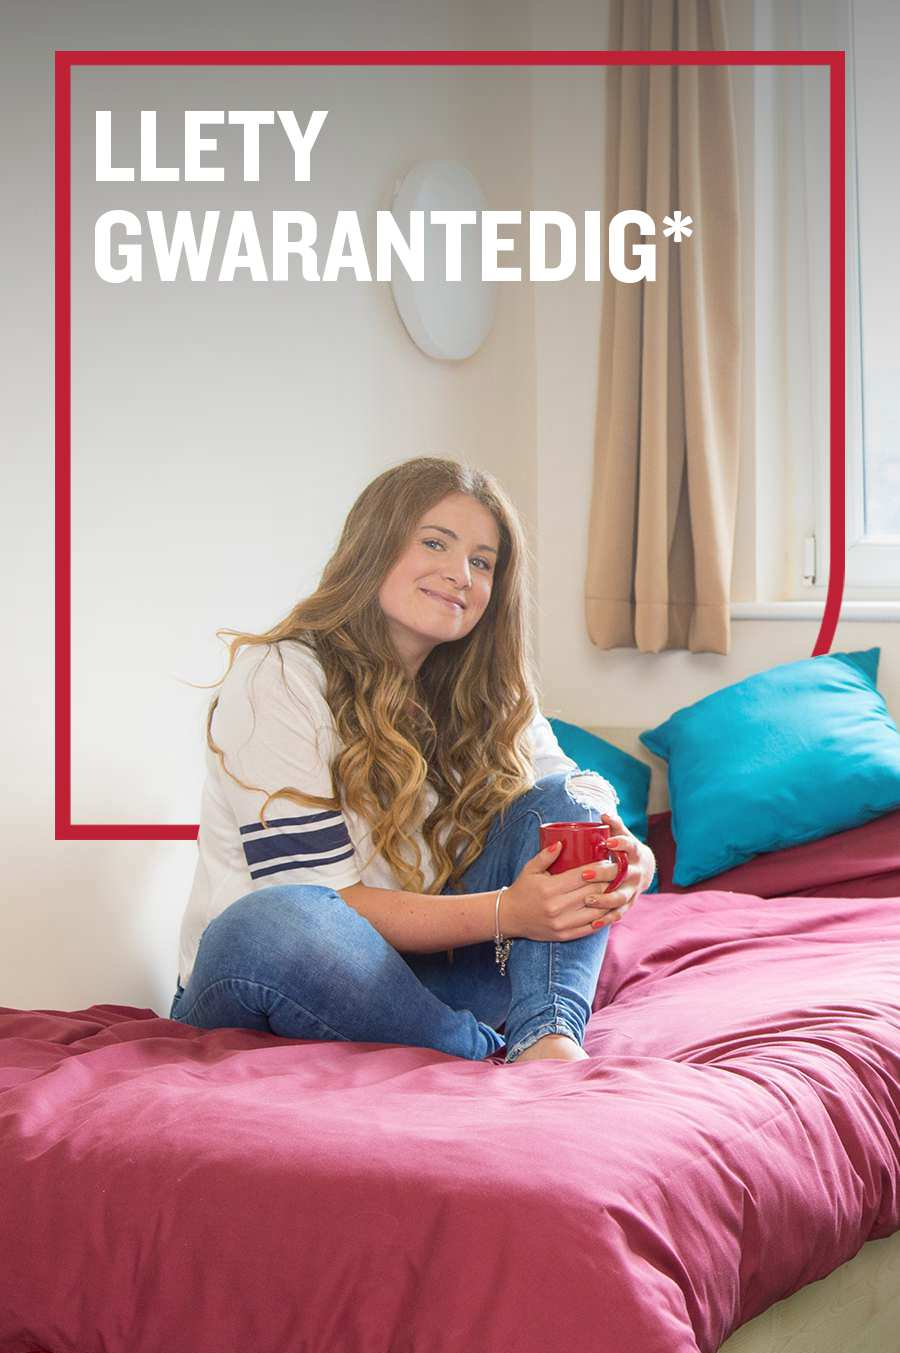 Guaranteed-Accommodation-LONG-Banner-WELSH.png